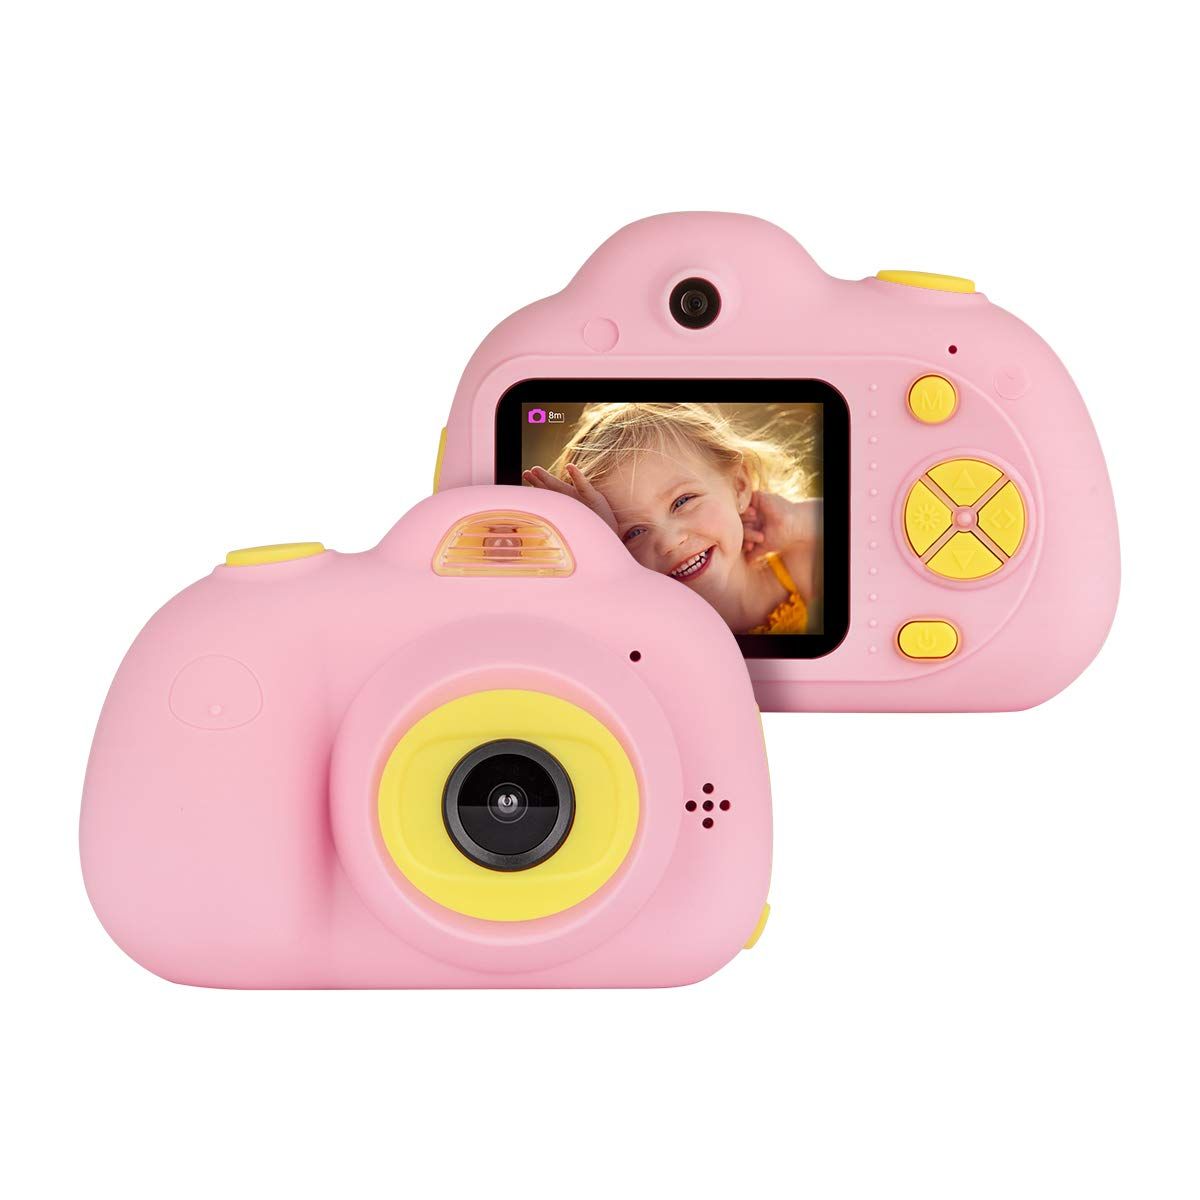 Kids Cameras Dual Selfie Digital Camera HD Video Recorder Action Camera Camcorder for 4-9 Year Old Kids Birthday Festival Gifts Toys for Children Boys Girls 2.0'' LCD Screen 4X Digital Zoom (Pink) by Tyhbelle (Image #1)